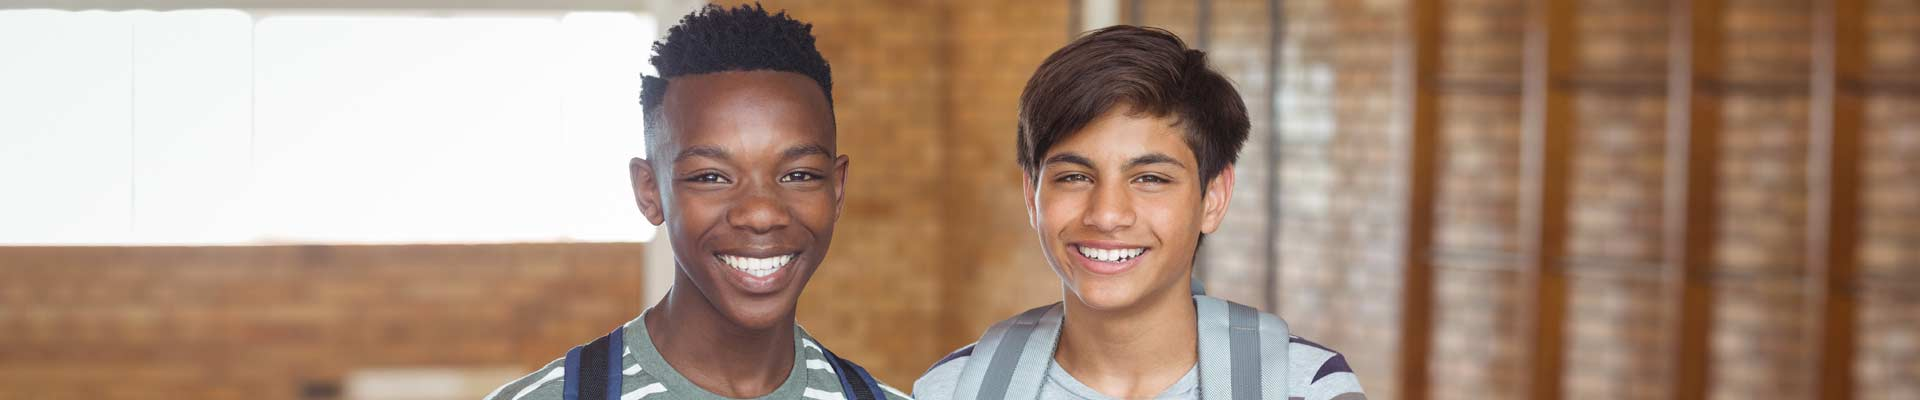 Teen Boys The Silver Spring Orthodontist Silver Spring and Olney MD